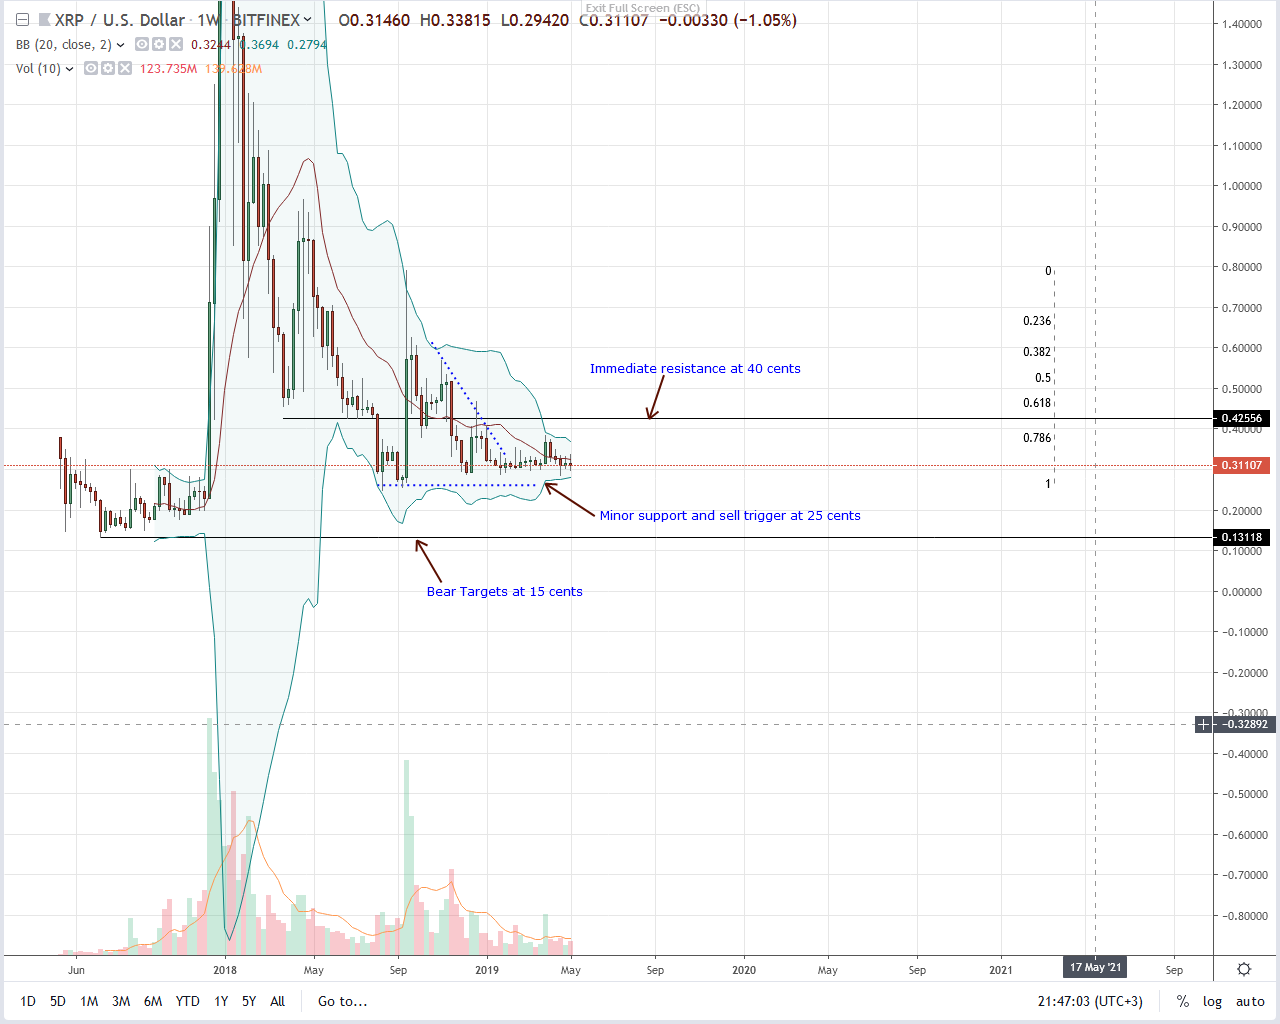 Ripple XRP price analysis: Q1 remains within 30 cents range in 2019 2